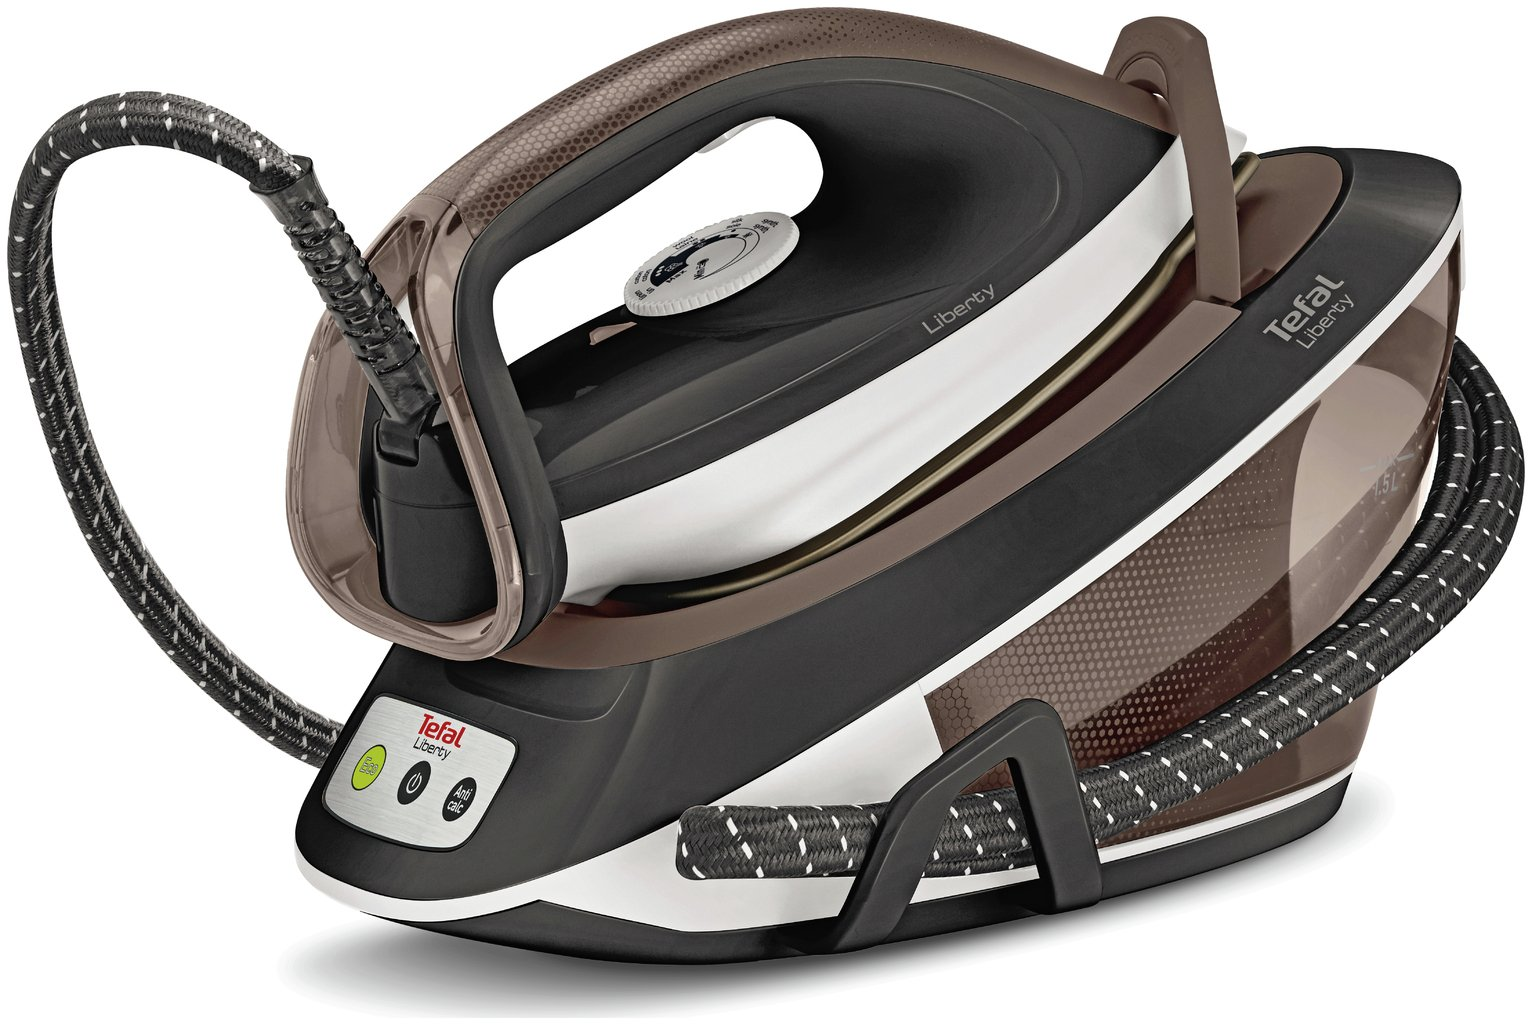 Tefal SV7040 Liberty Steam Generator Iron